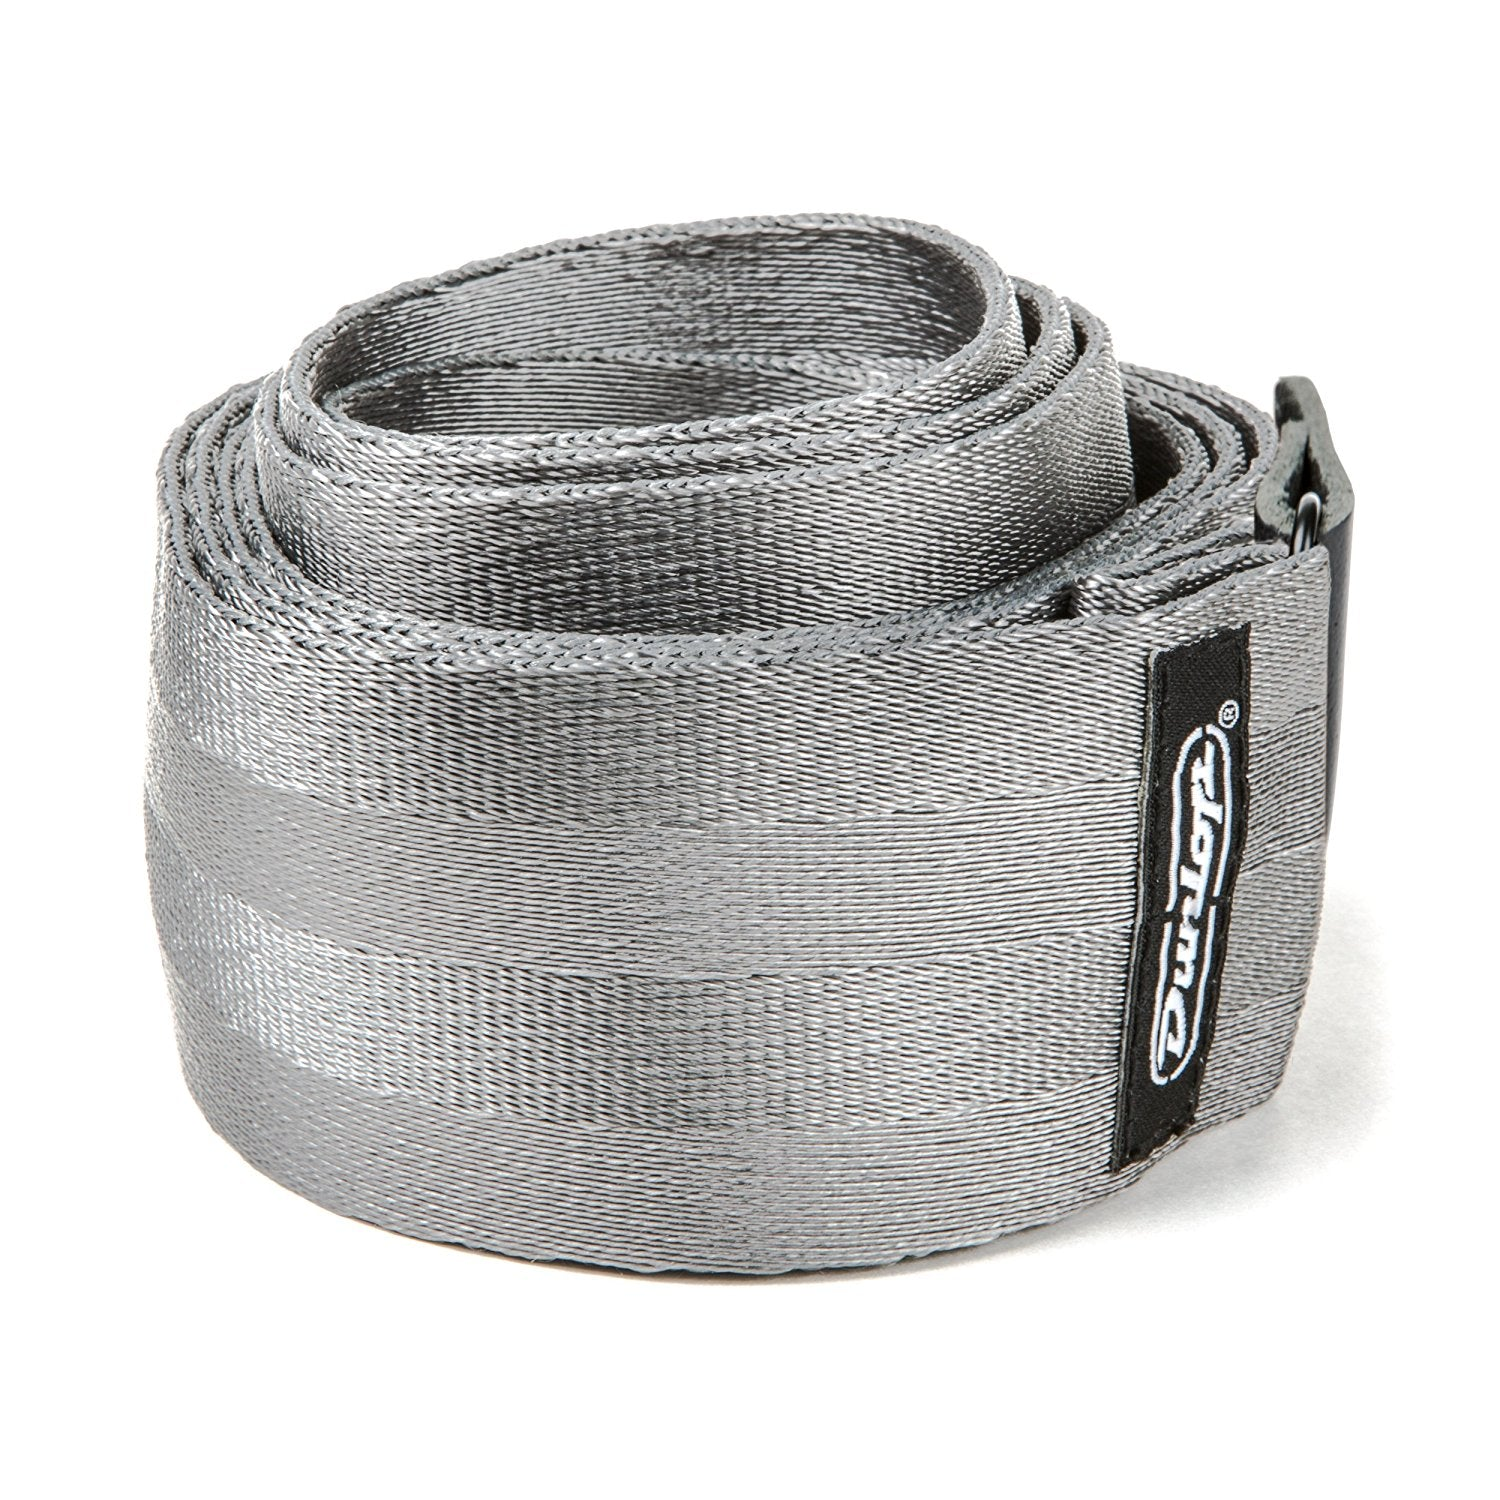 Dunlop DST7001GY Guitar Deluxe Seatbelt Strap - Grey